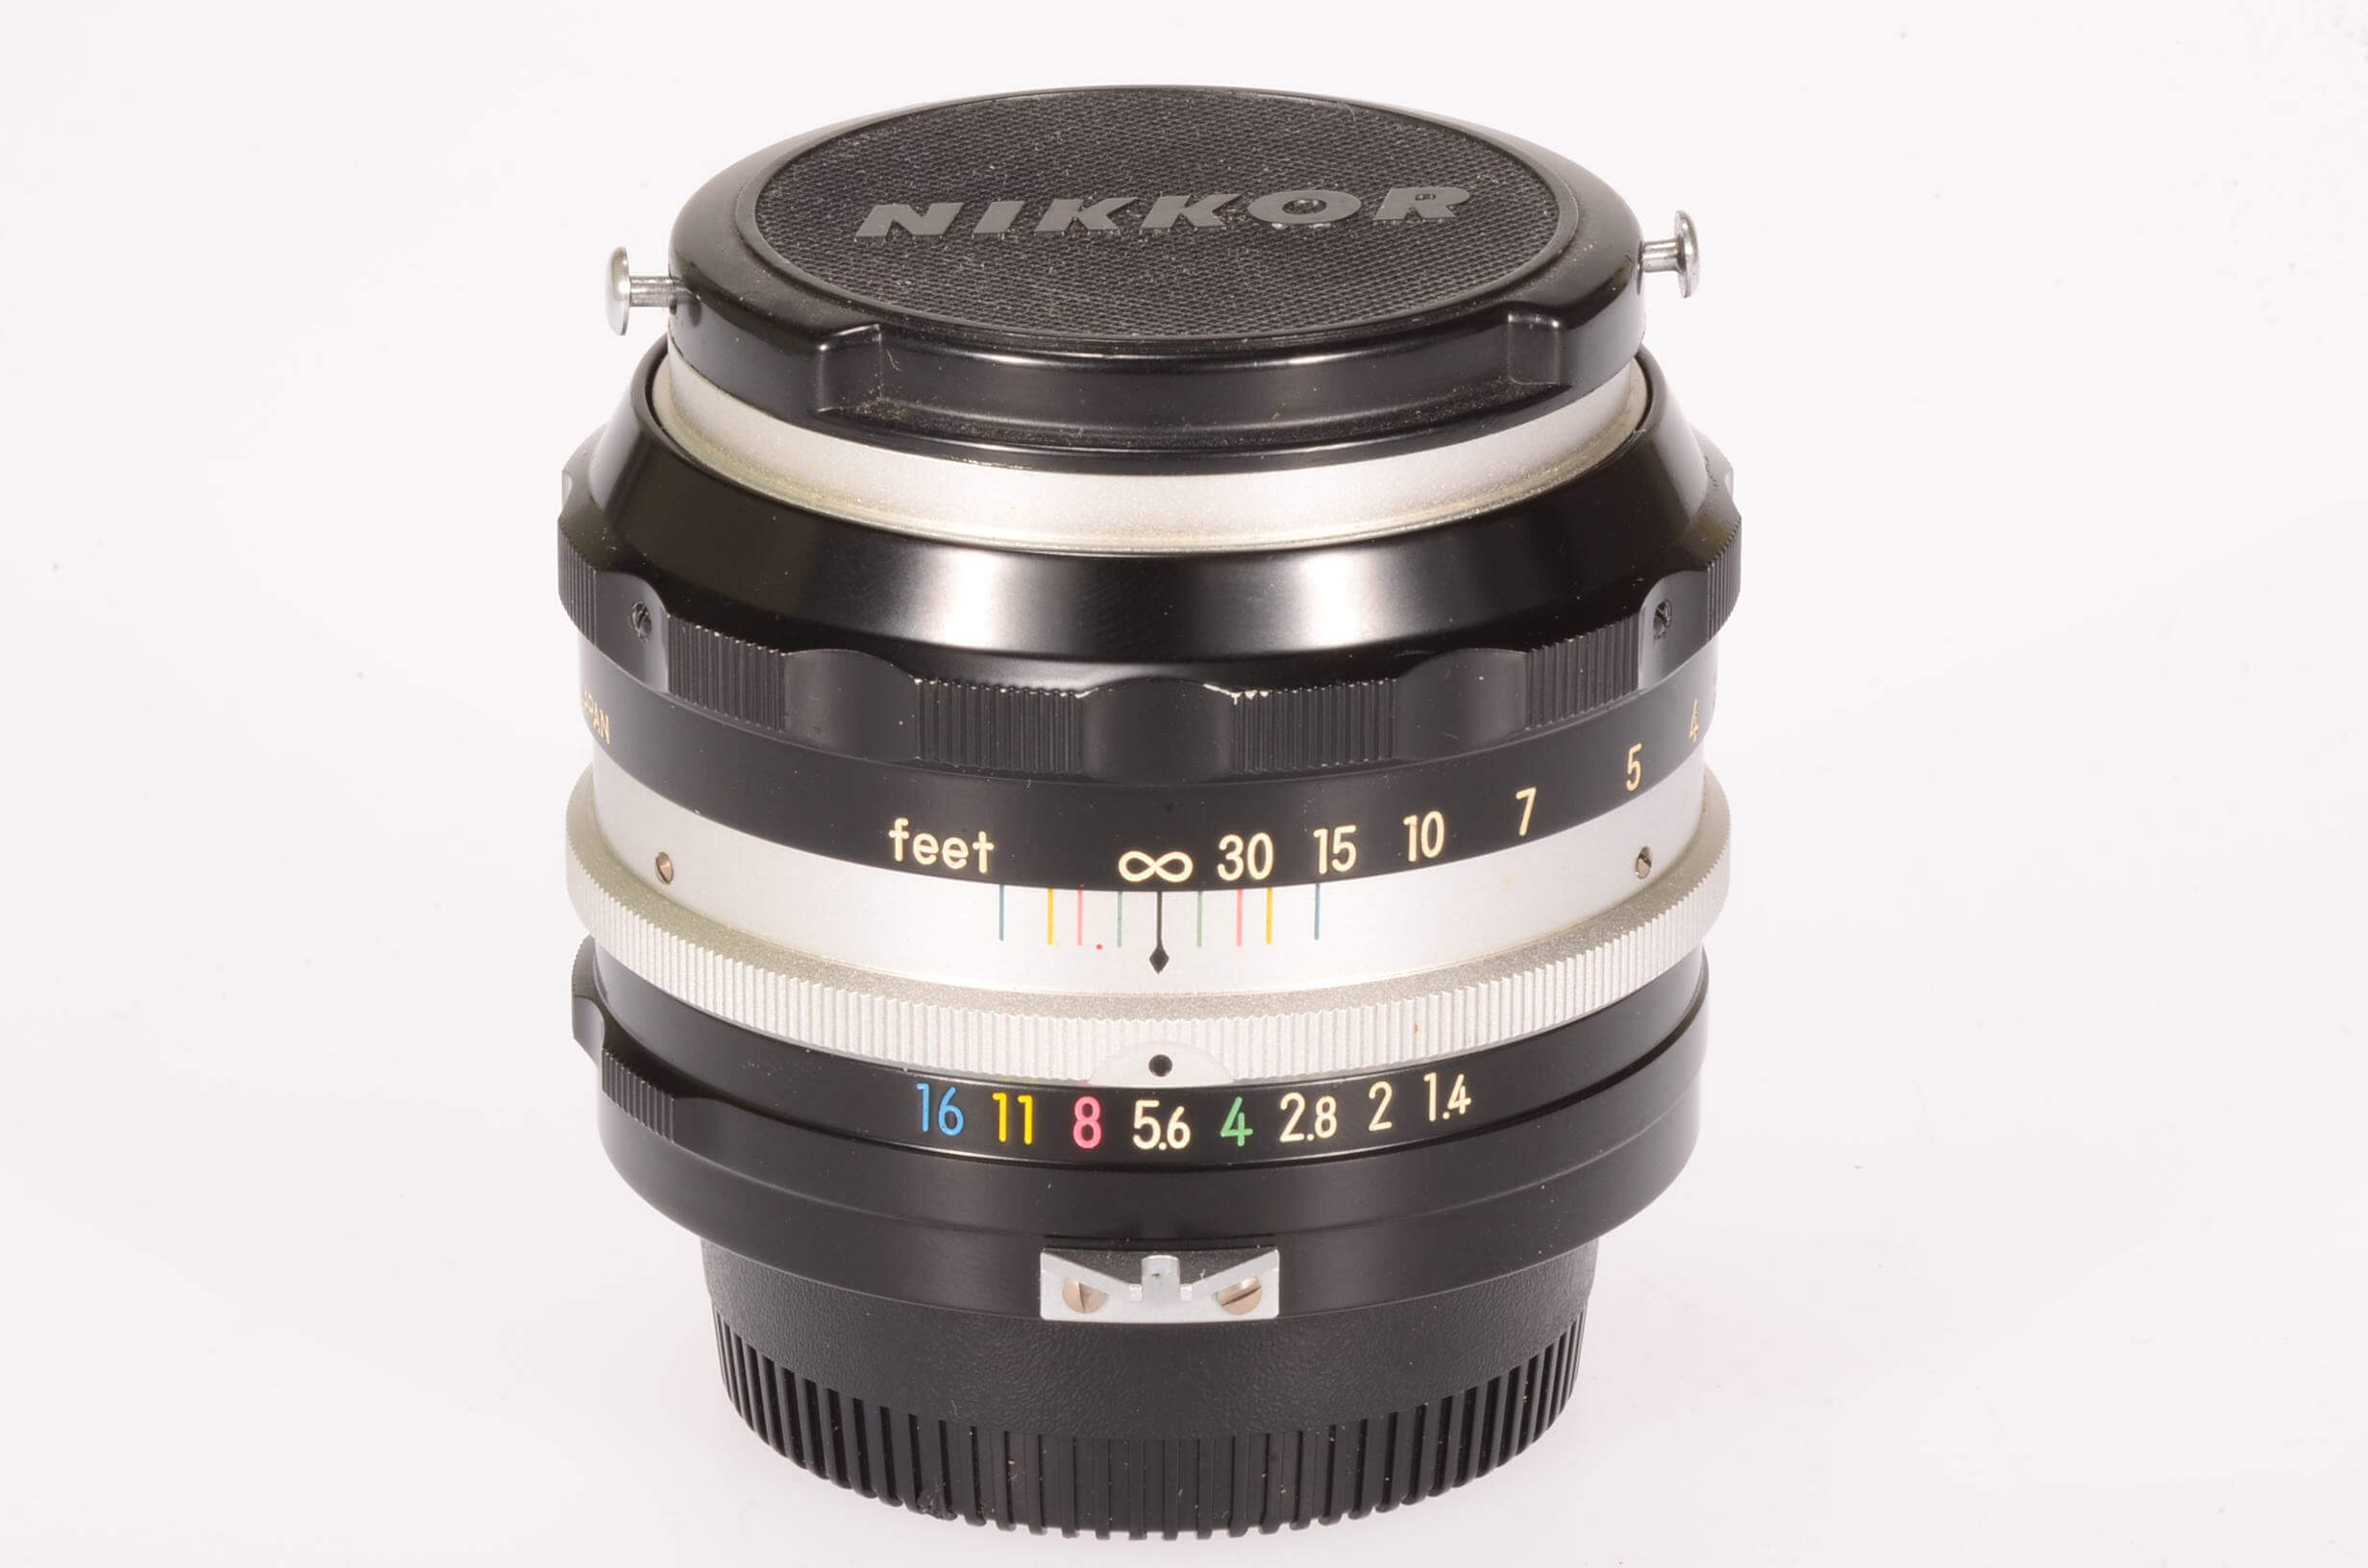 Nikon 50mm f1.4 Nikkor, pre-AI, serviced, exceptional condition!